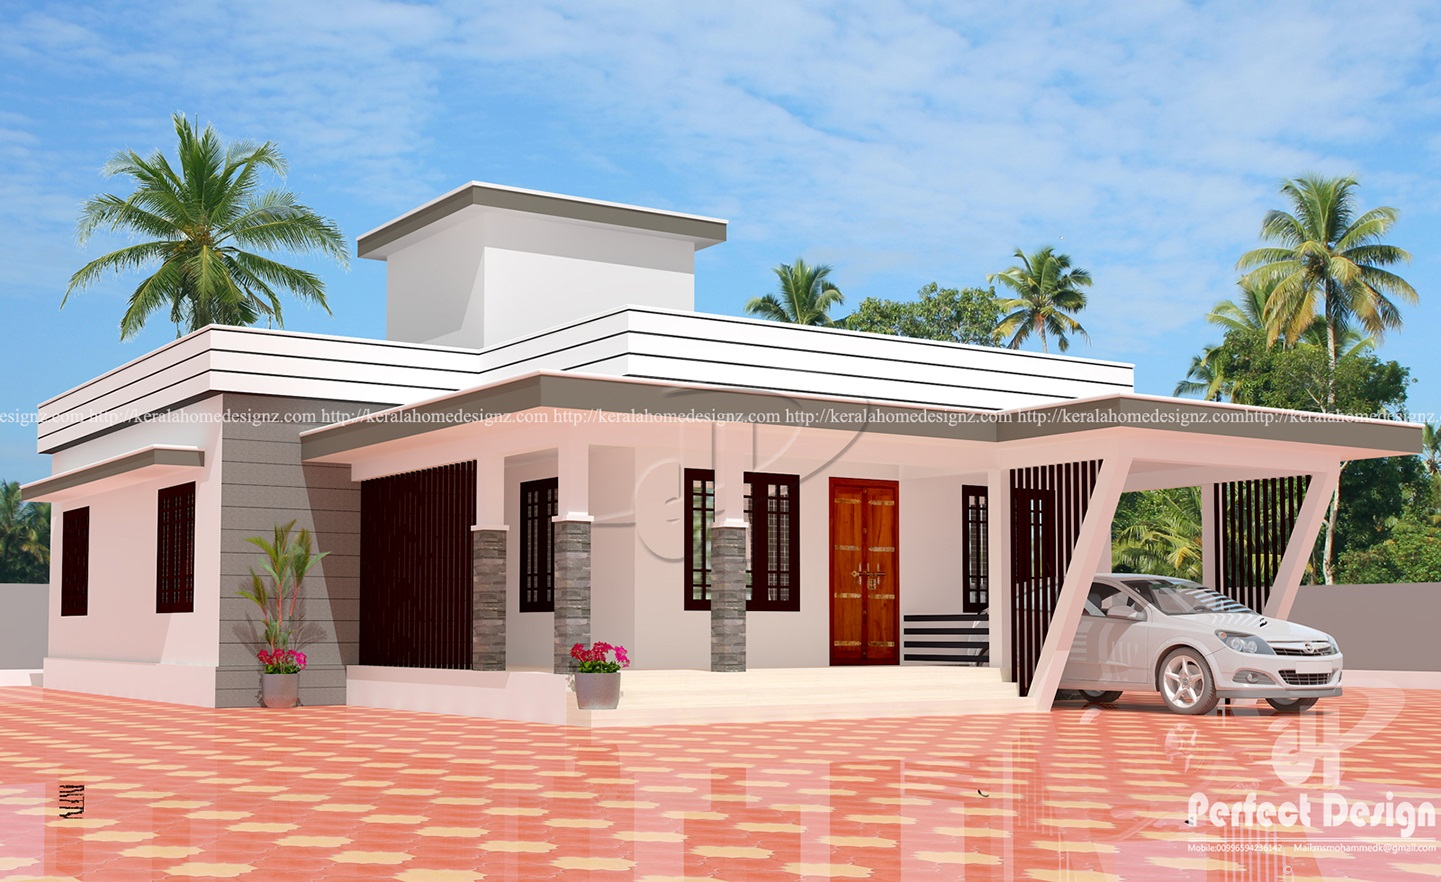 3 bedroom modern flat roof house layout kerala home design - Flat roof home designs ...